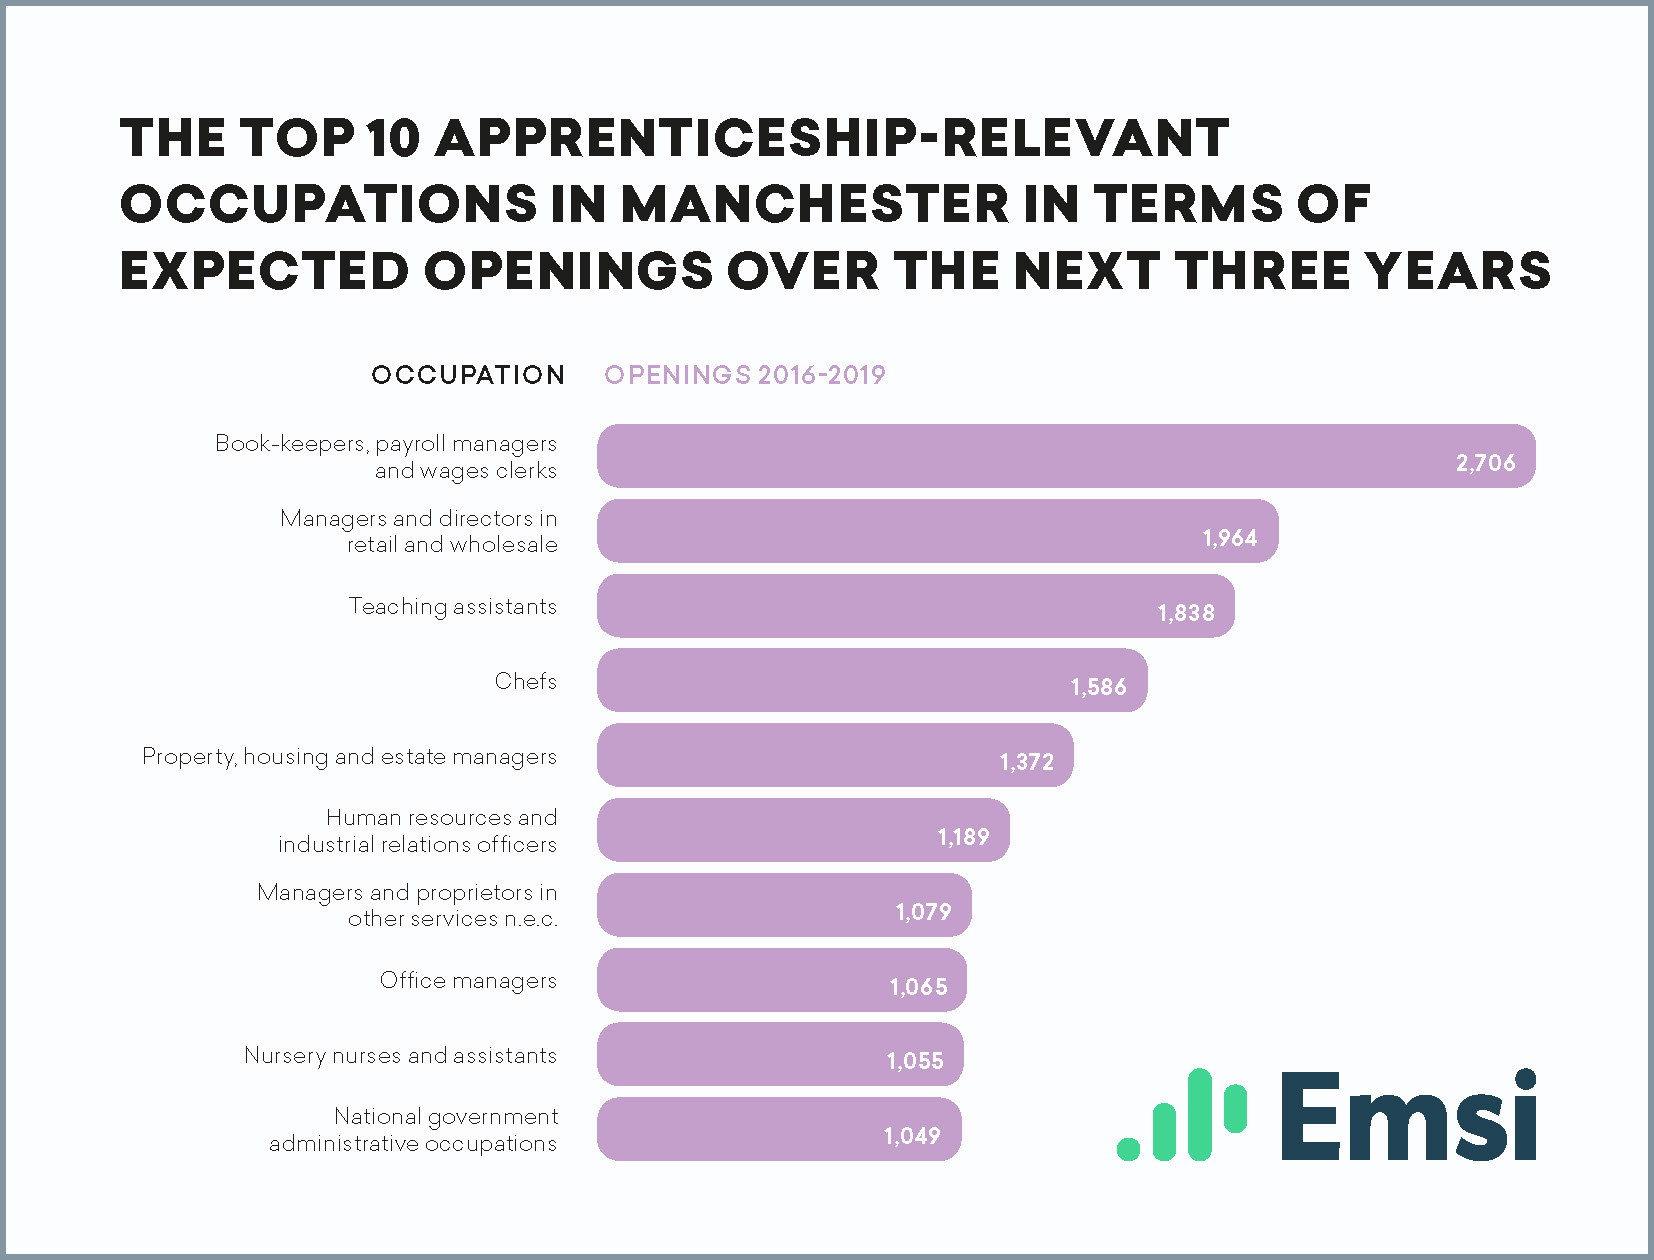 Top 10 apprenticeship-relevant occupations in Manchester in terms of expected openings over the next three years